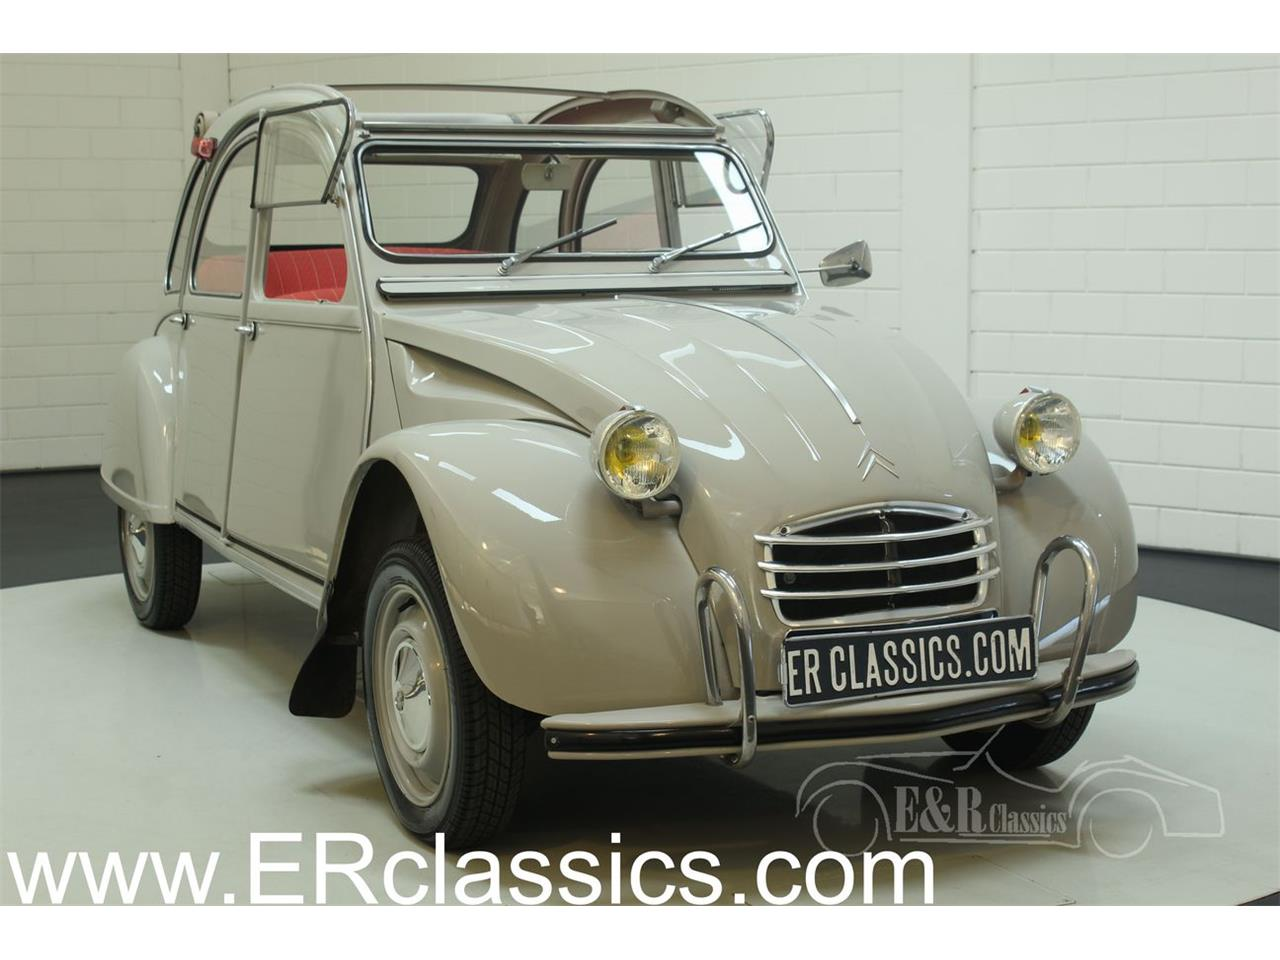 Large Picture of Classic 1966 Citroen 2CV located in - Keine Angabe - Offered by E & R Classics - PGSV